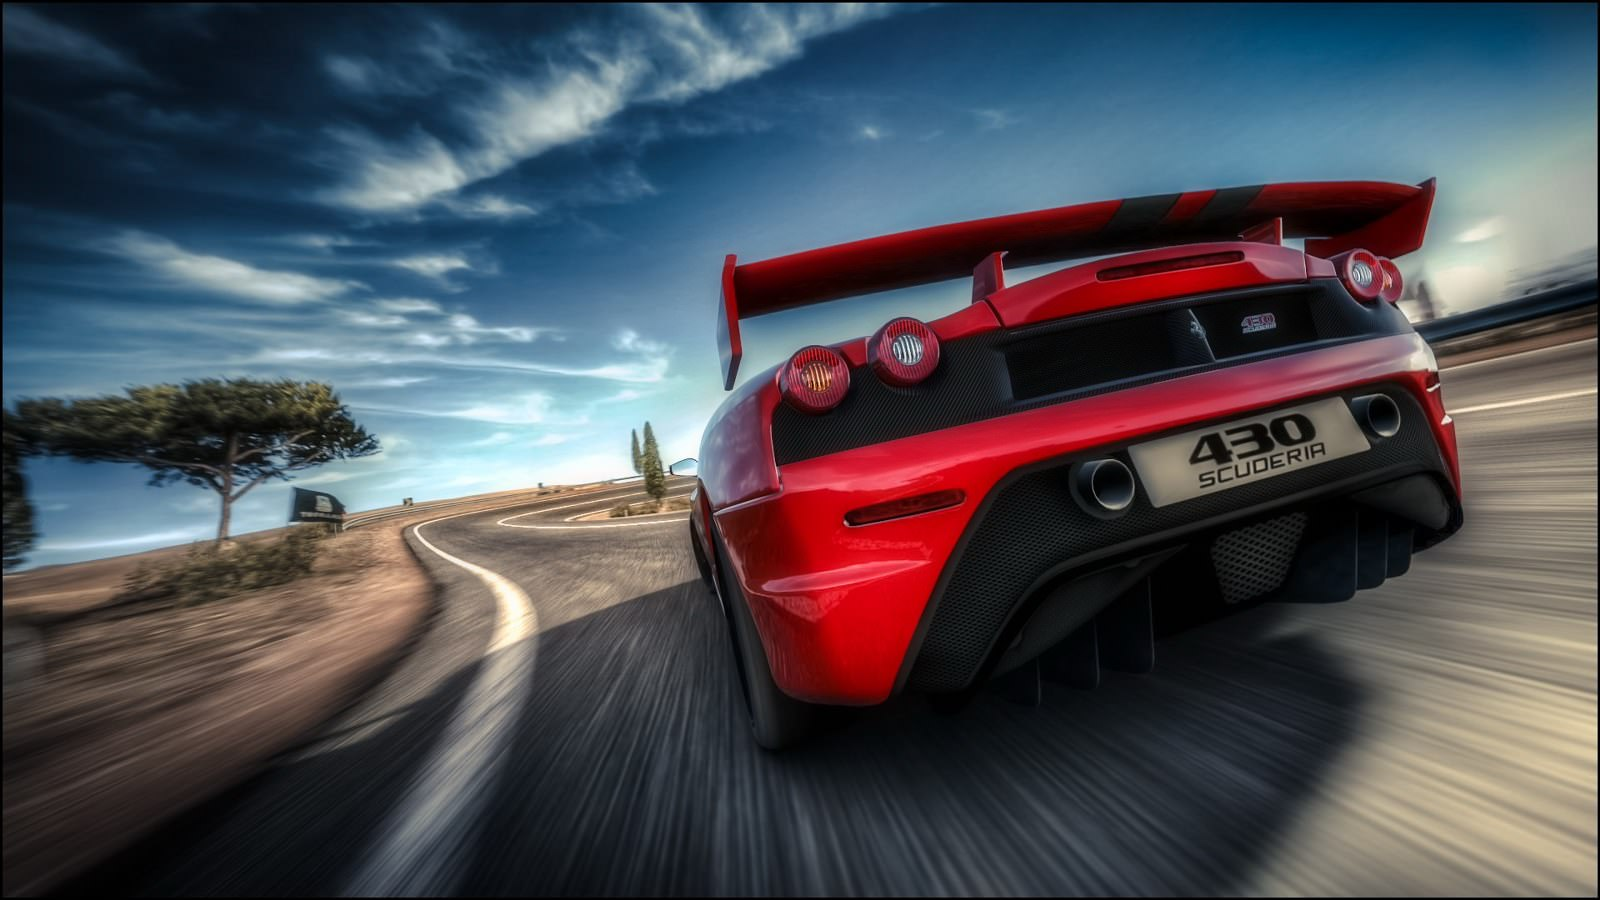 185  HD Car Backgrounds Wallpapers Images Pictures Design Trends